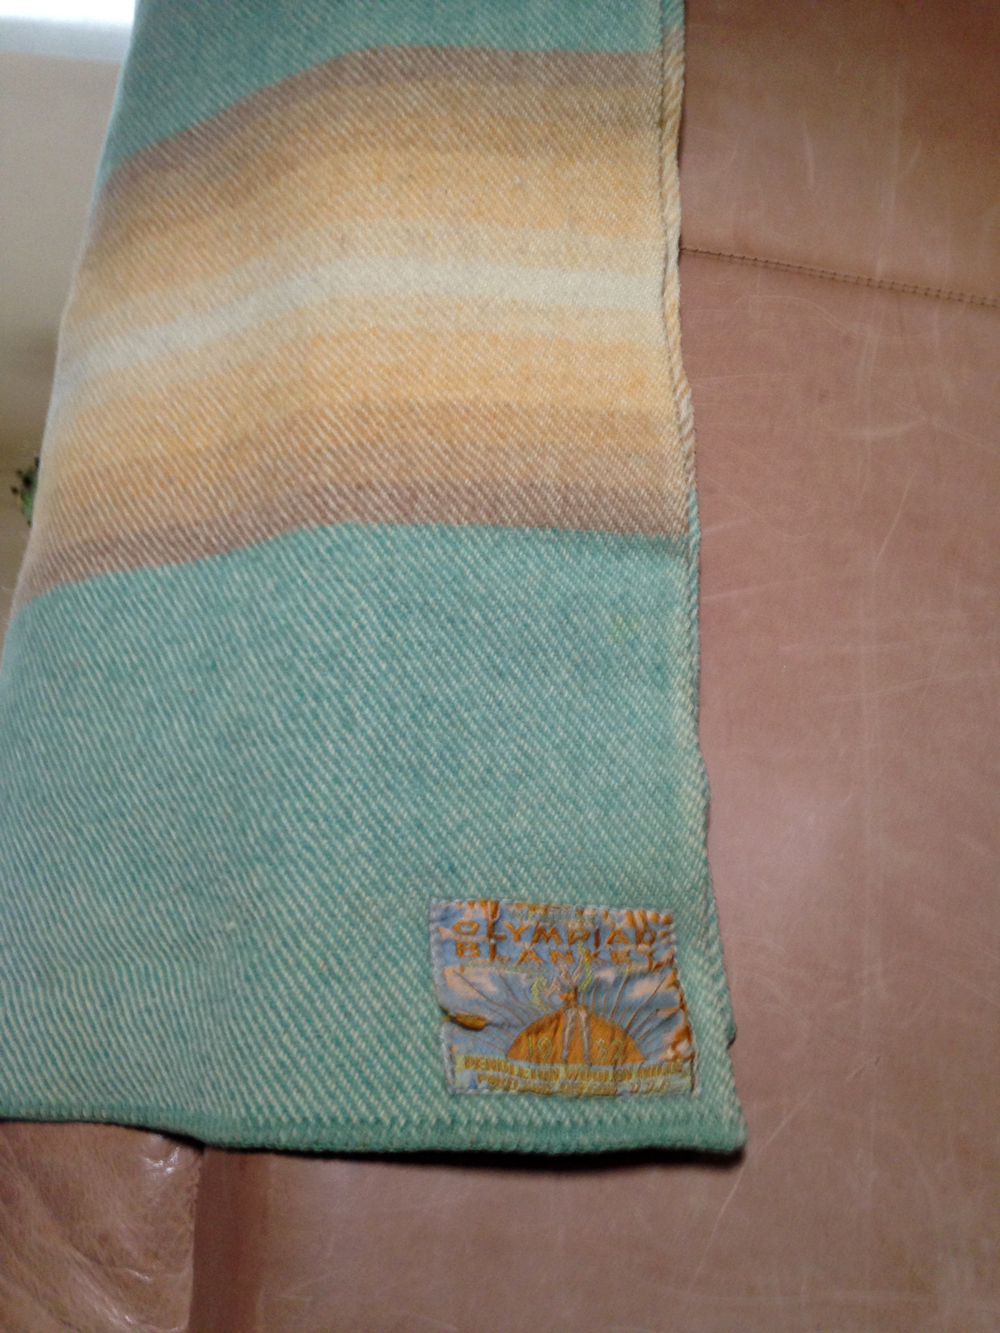 A beautiful Pendleton Olympiad blanket in teal, with a twill weave and an embroidered label.